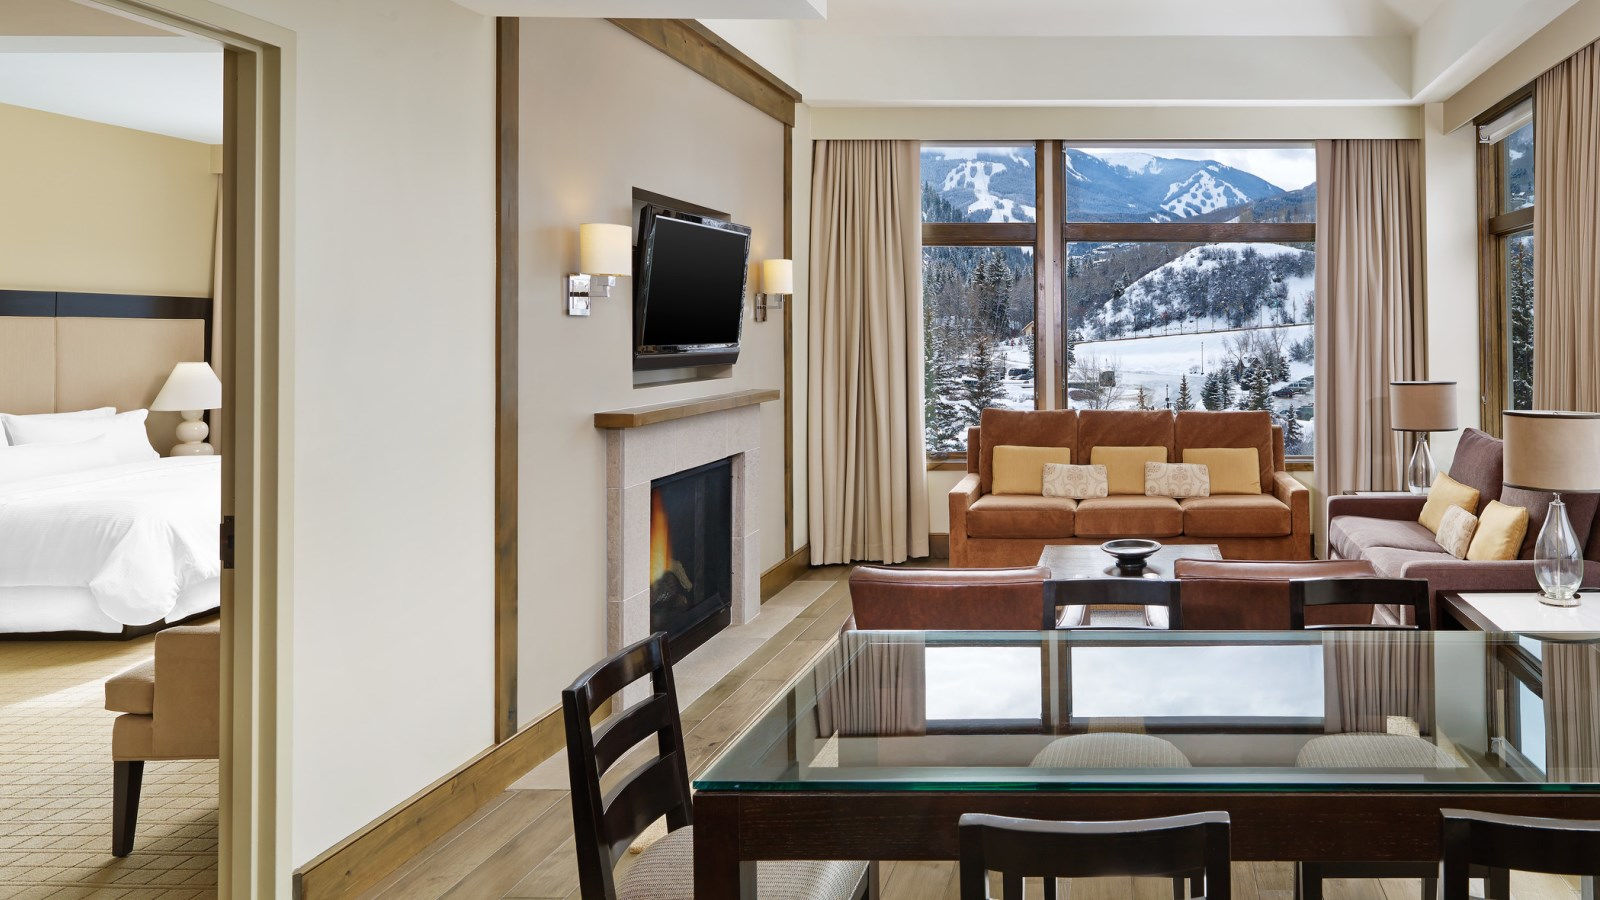 The Westin Riverfront Resort & Spa at Beaver Creek Mountain - One Bedroom Suite